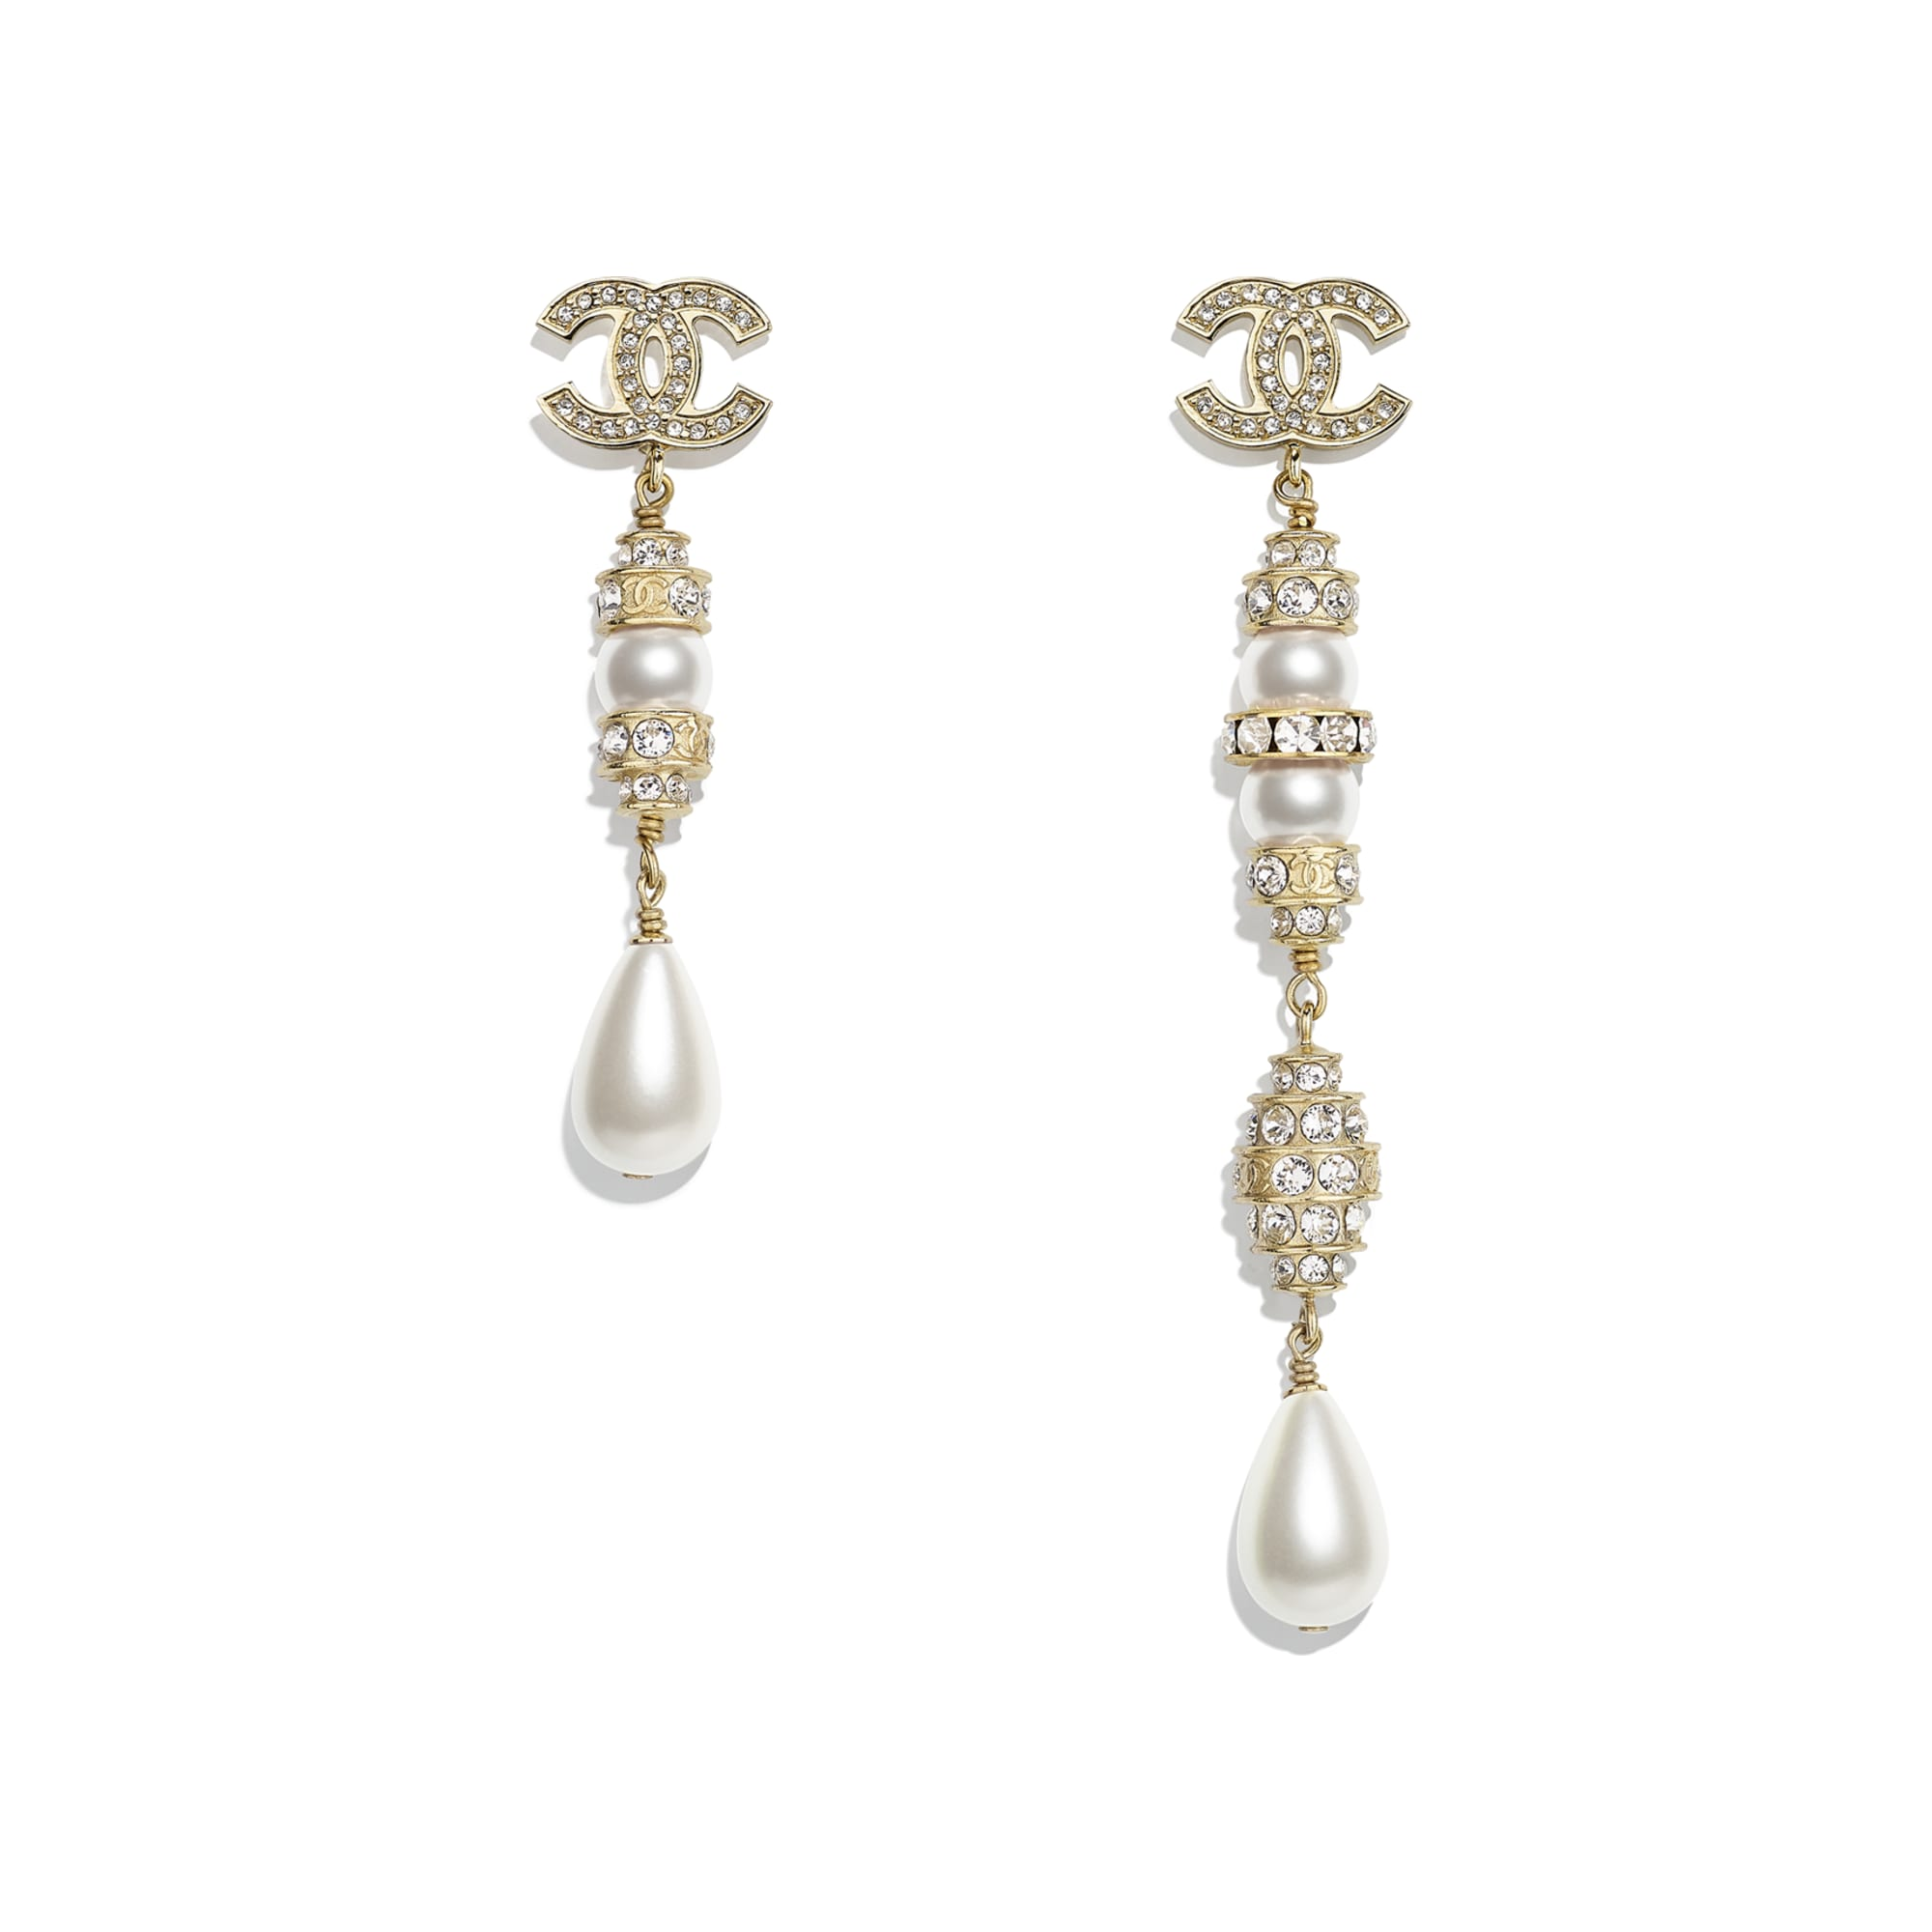 Earrings - Gold, Pearly White & Crystal - Resin, Glass Pearls, Diamanté & Metal - CHANEL - Default view - see standard sized version